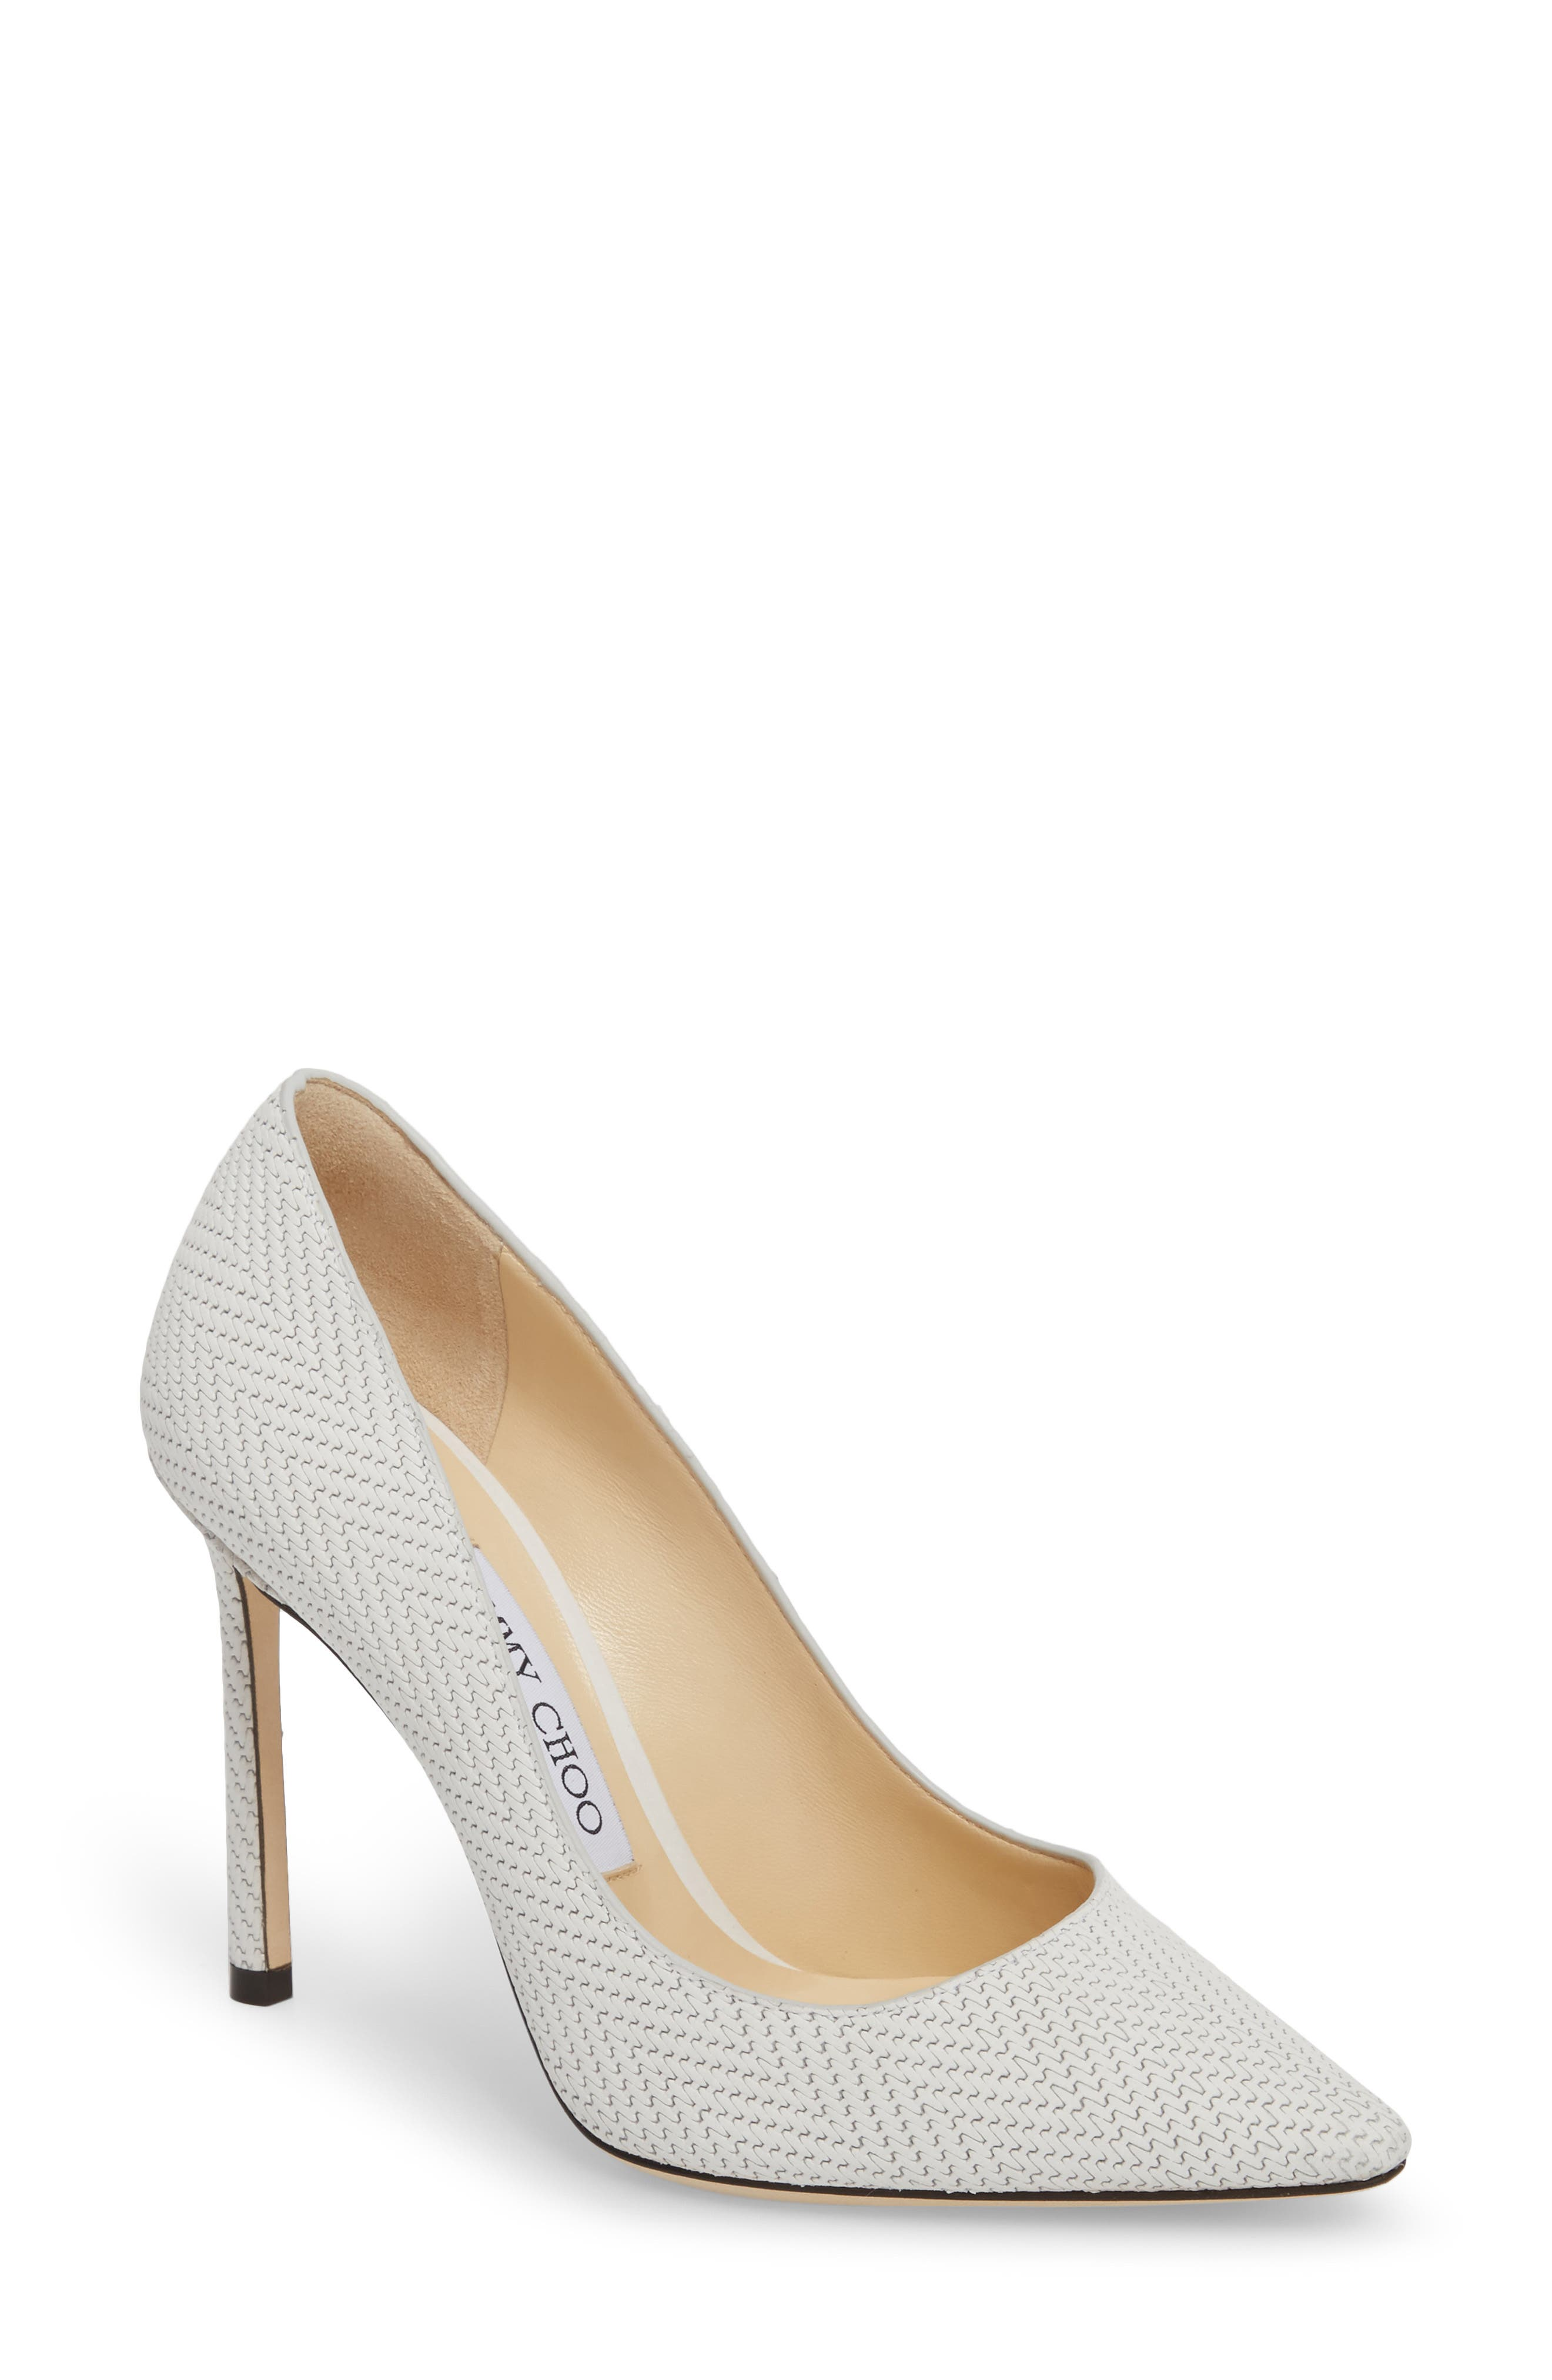 Romy Pointy Toe Pump,                         Main,                         color, Latte